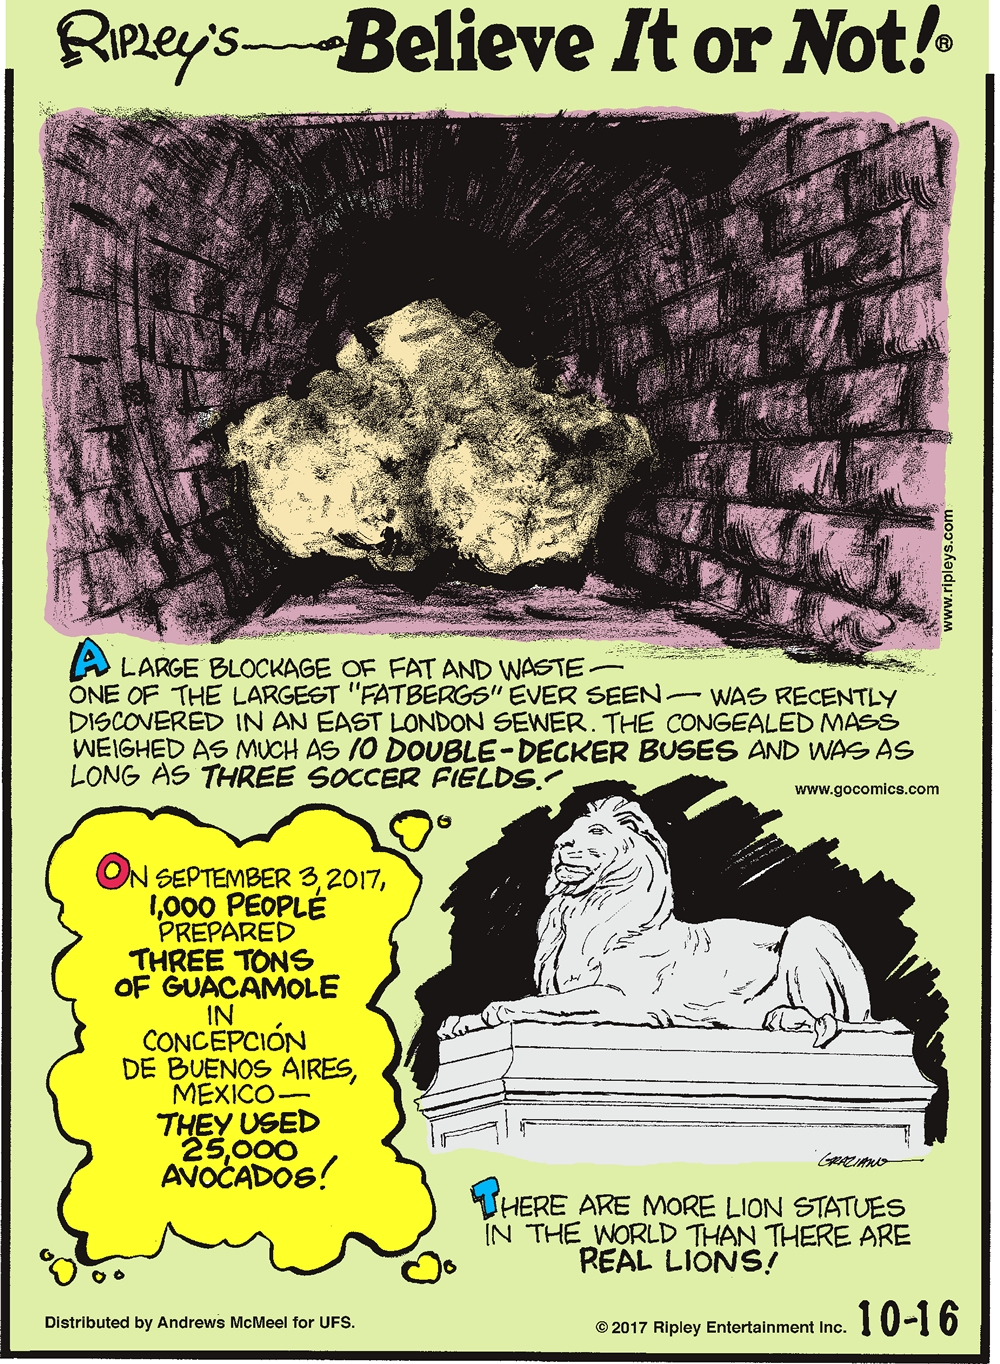 """A large blockage of fat and waste - one of the largest """"fatbergs"""" ever seen - was recently discovered in an East London sewer. The congealed mass weighed as much as 10 double-decker buses and was as long as three soccer fields!-------------------- On September 3, 2017, 1,000 people prepared three tons of guacamole in Concepcion de Buenos Aires, Mexico - they used 25,000 avocados!--------------------- There are more lion statues in the world than there are real lions!"""